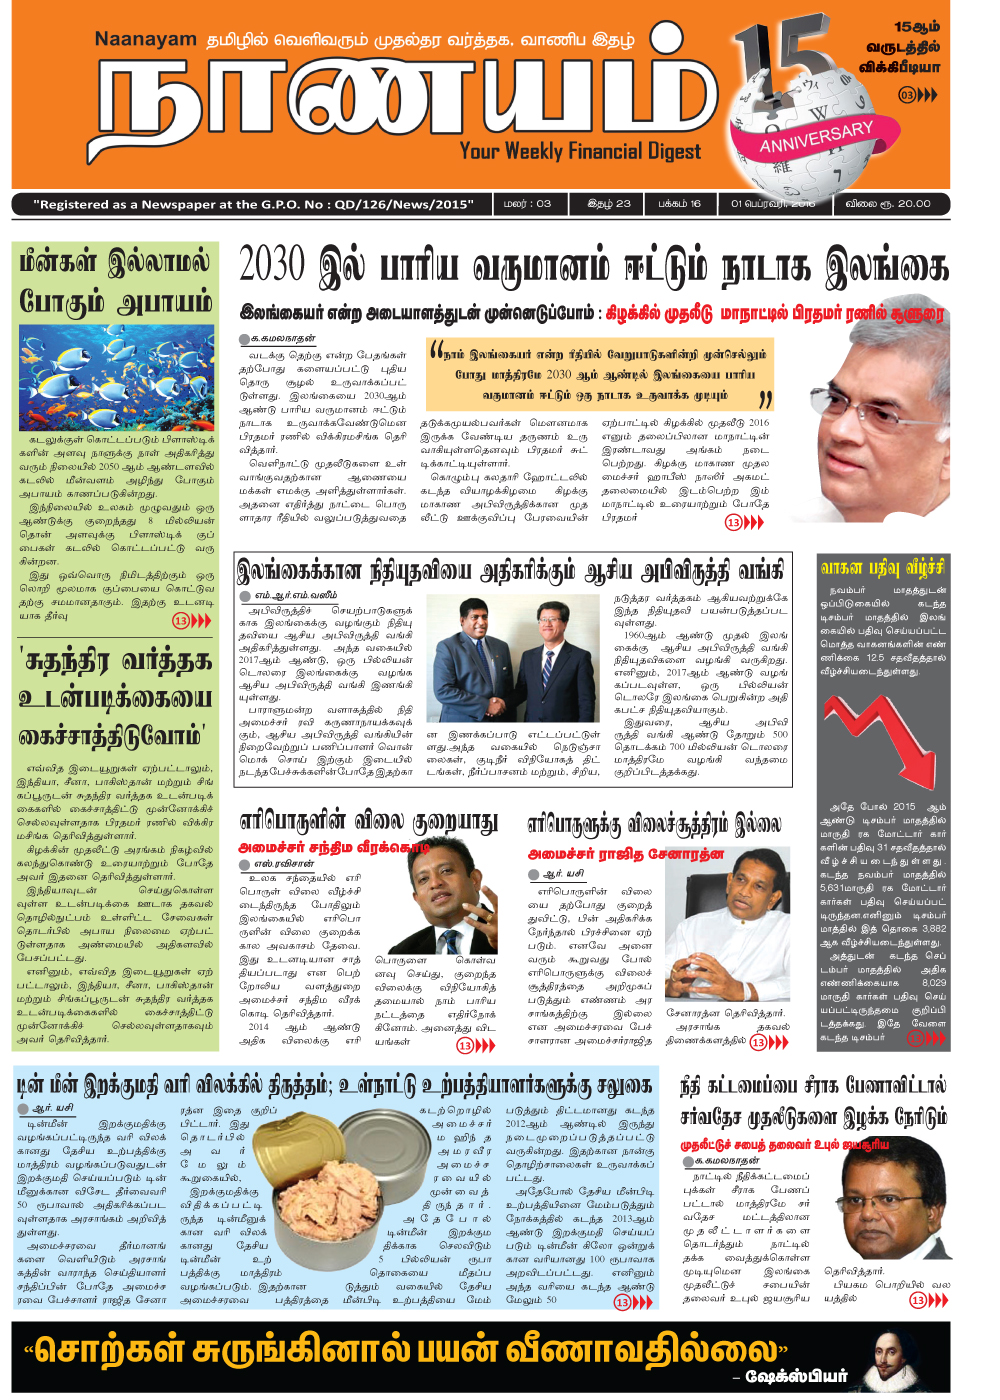 tamil paper Dinamalar online newspaper is the popular daily tamil newspaper from chennai the epaper has publications from chennai, madhurai,coimbatore,pondicherrydinamalar, a leading tamil newspaper and dinamalarcom, no1, indian publication portal from india, bring out this ipad app to provide its enriched content with better user experience.